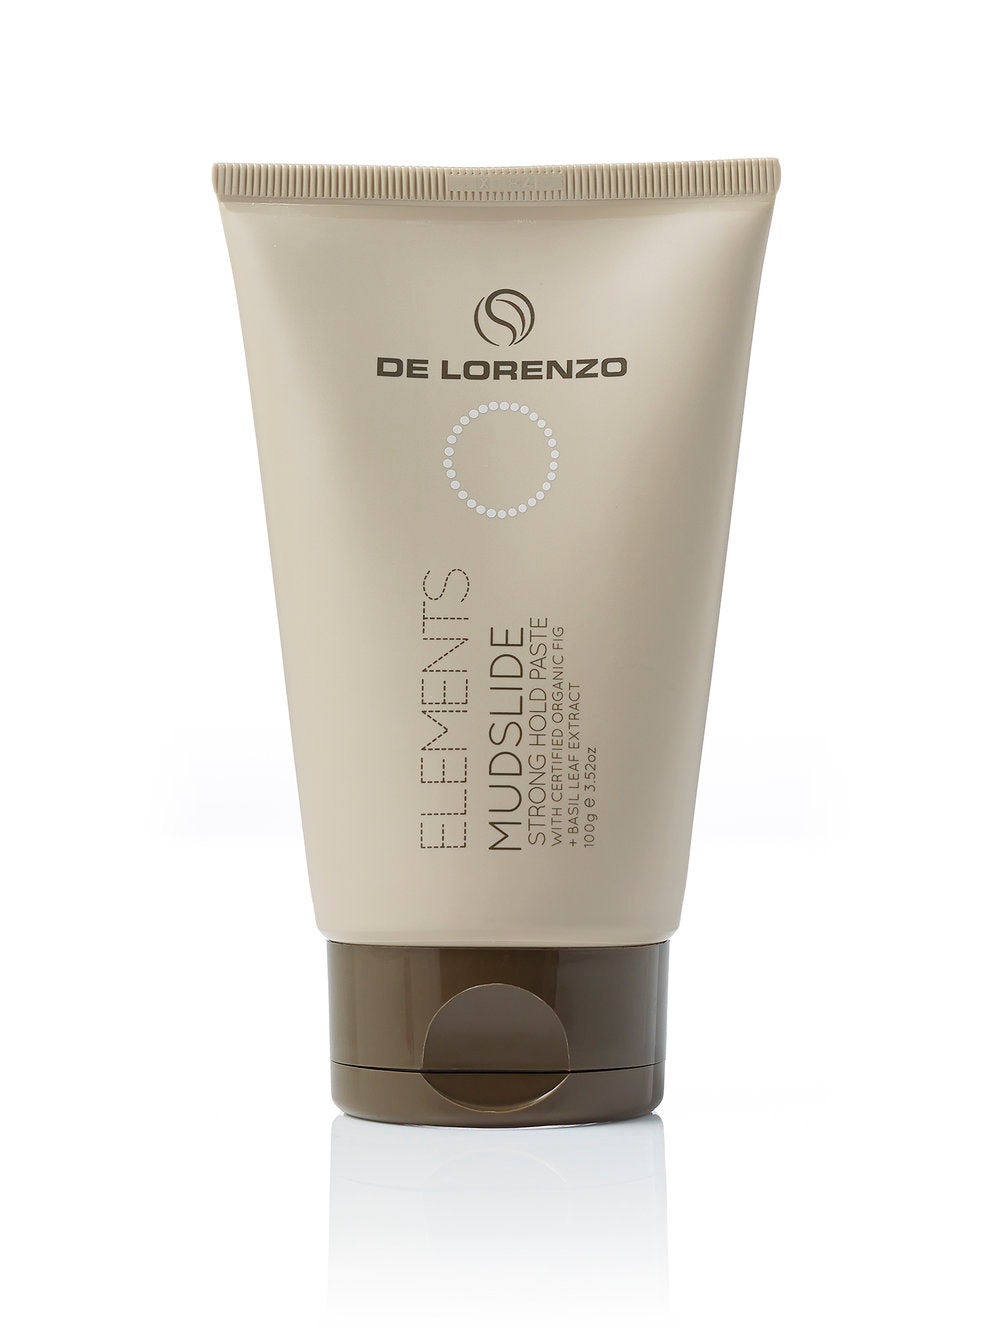 De Lorenzo Elements Mudslide 100g